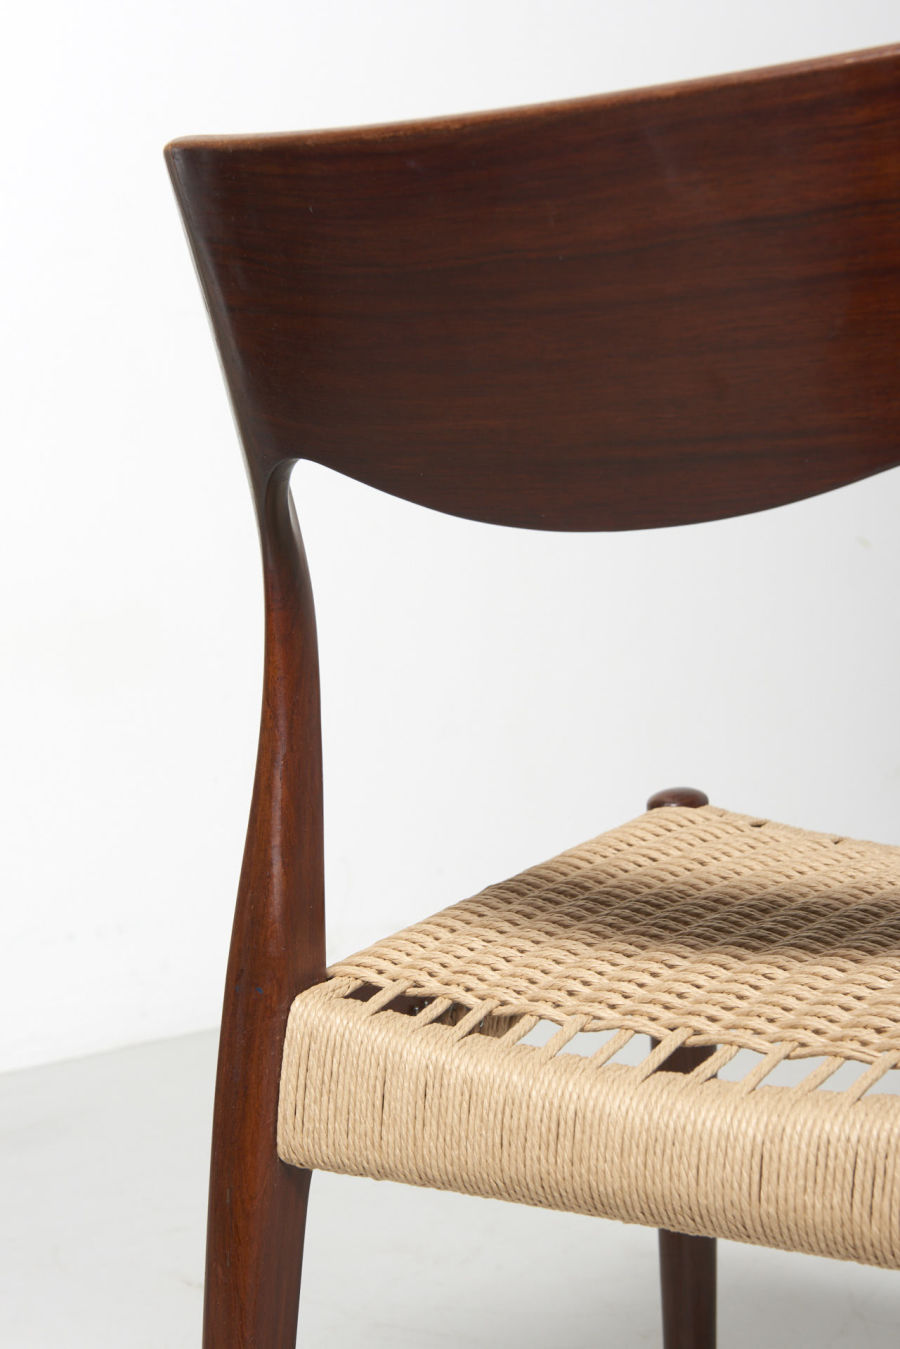 modestfurniture-vintage-2471-rosewood-dining-chairs-paper-cord12